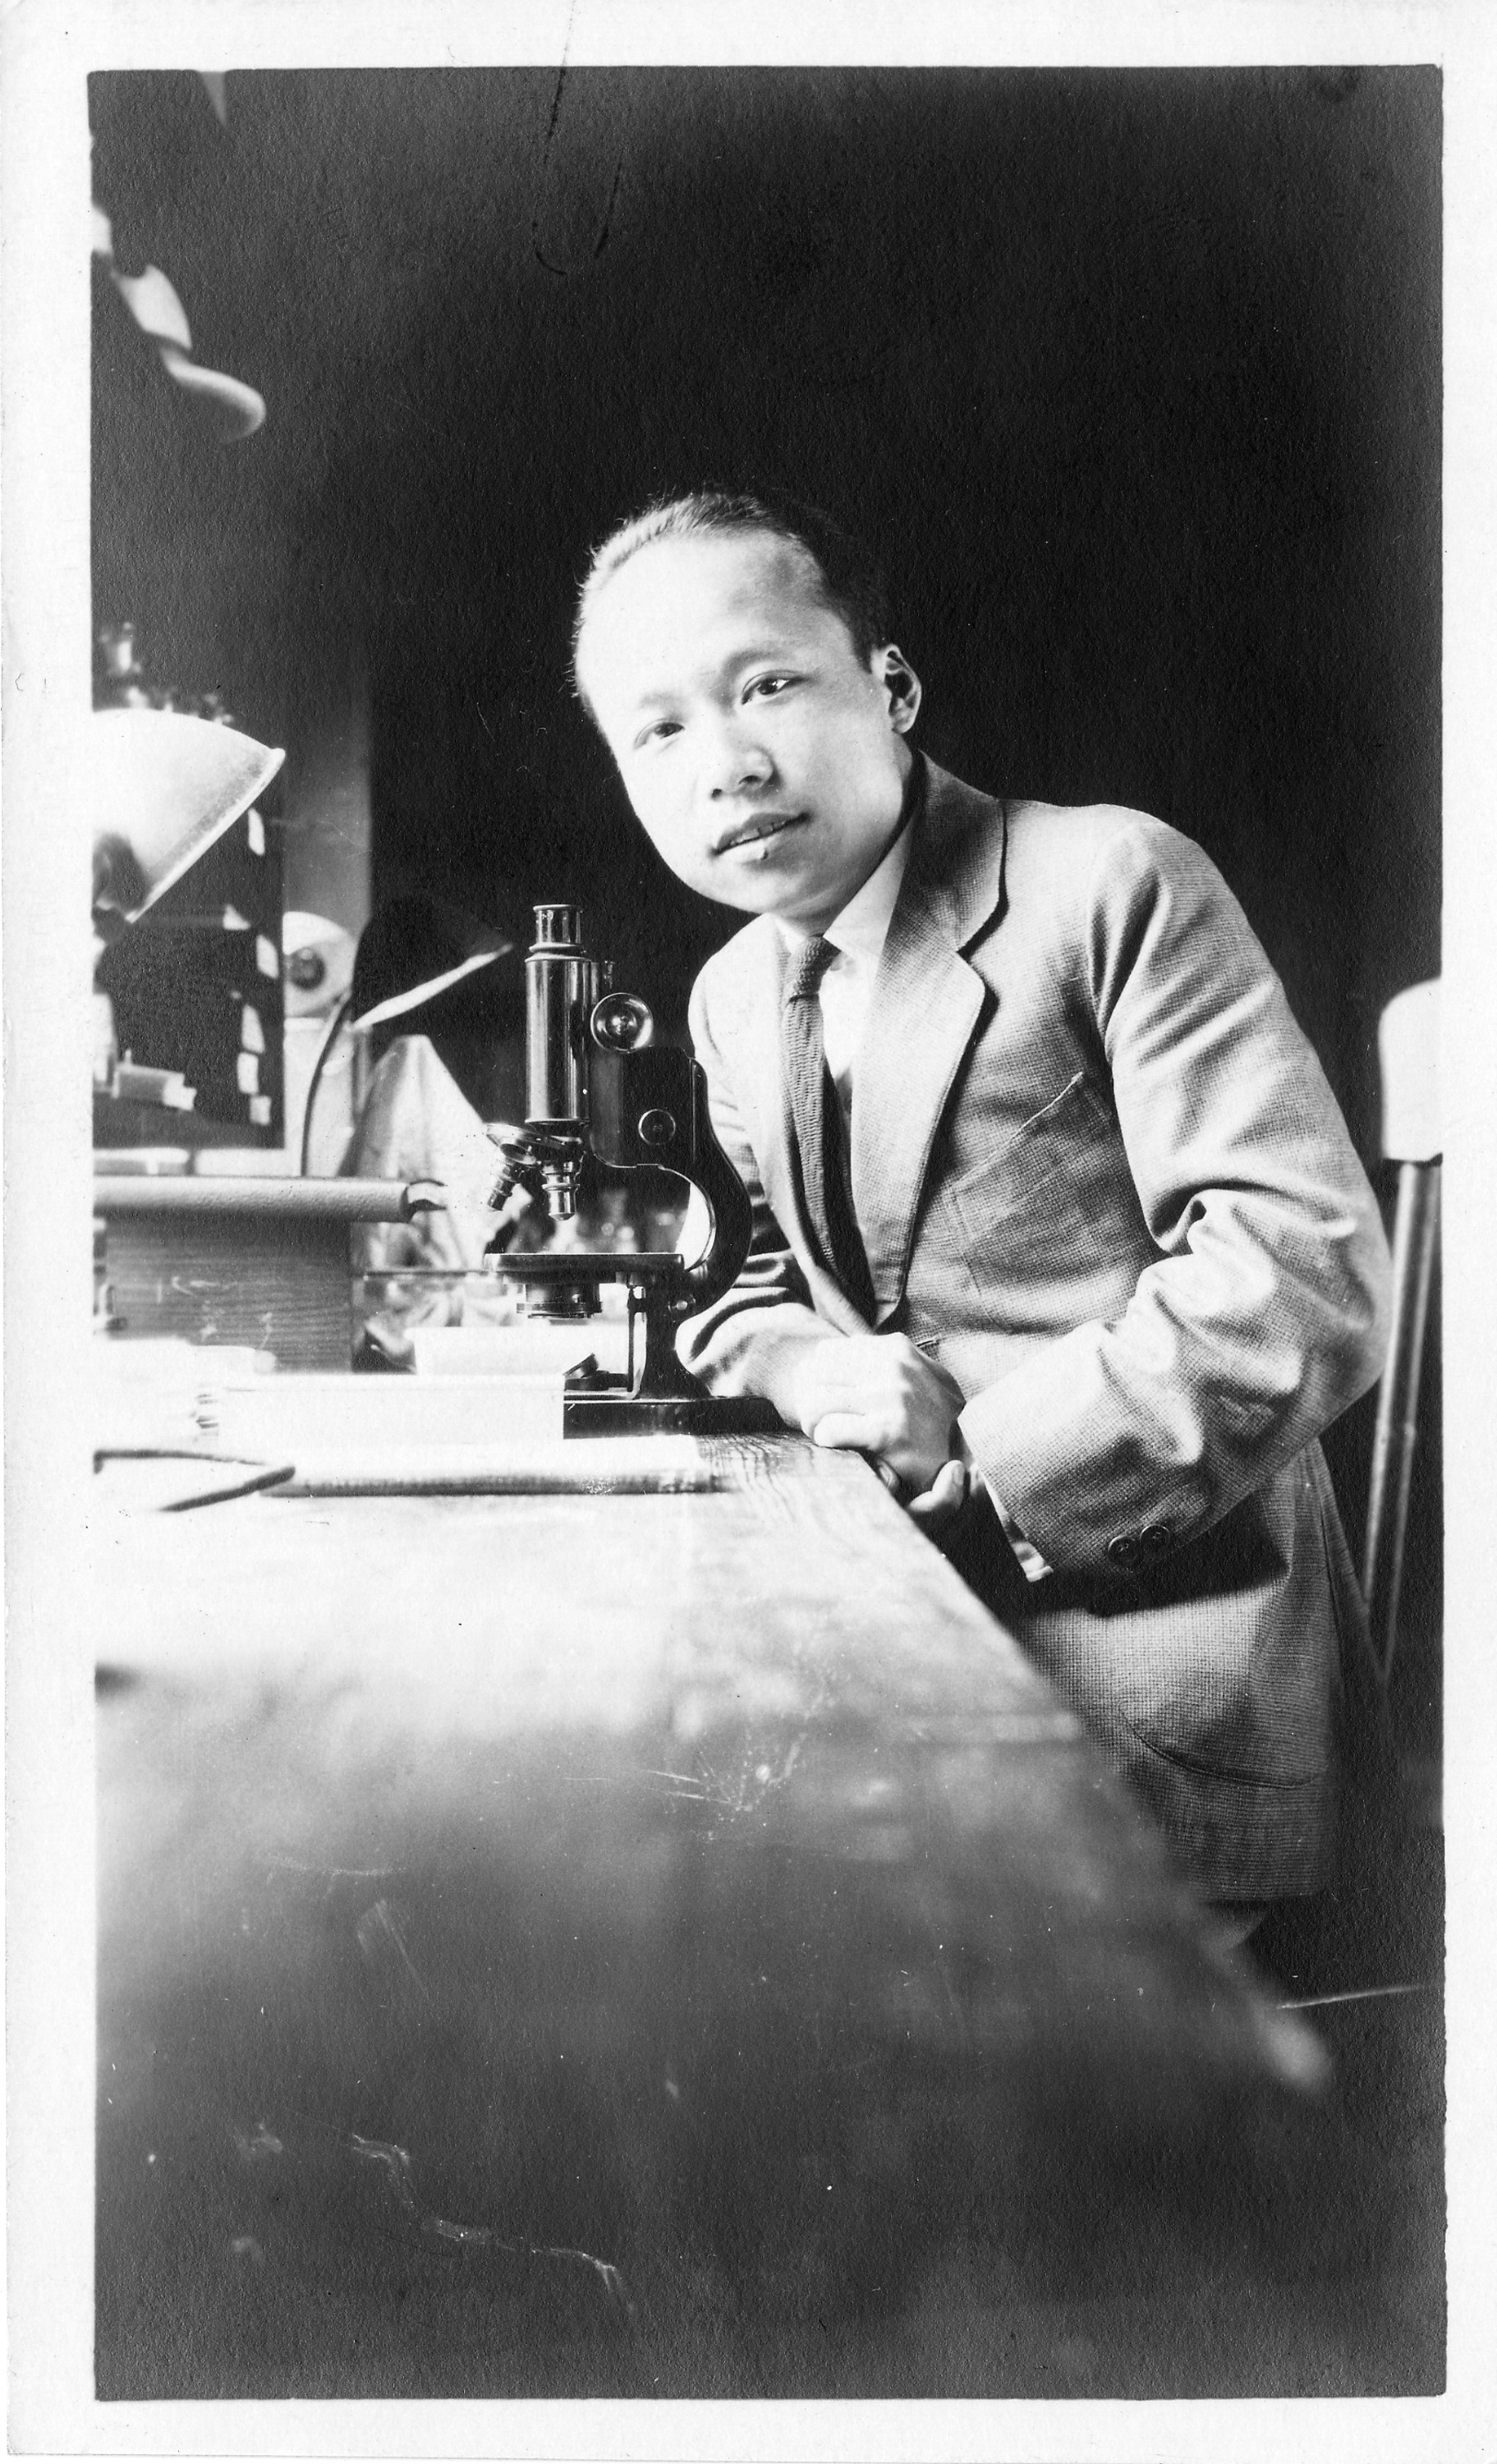 A man leans toward his desk. On the desk, his hands are near a microscope.